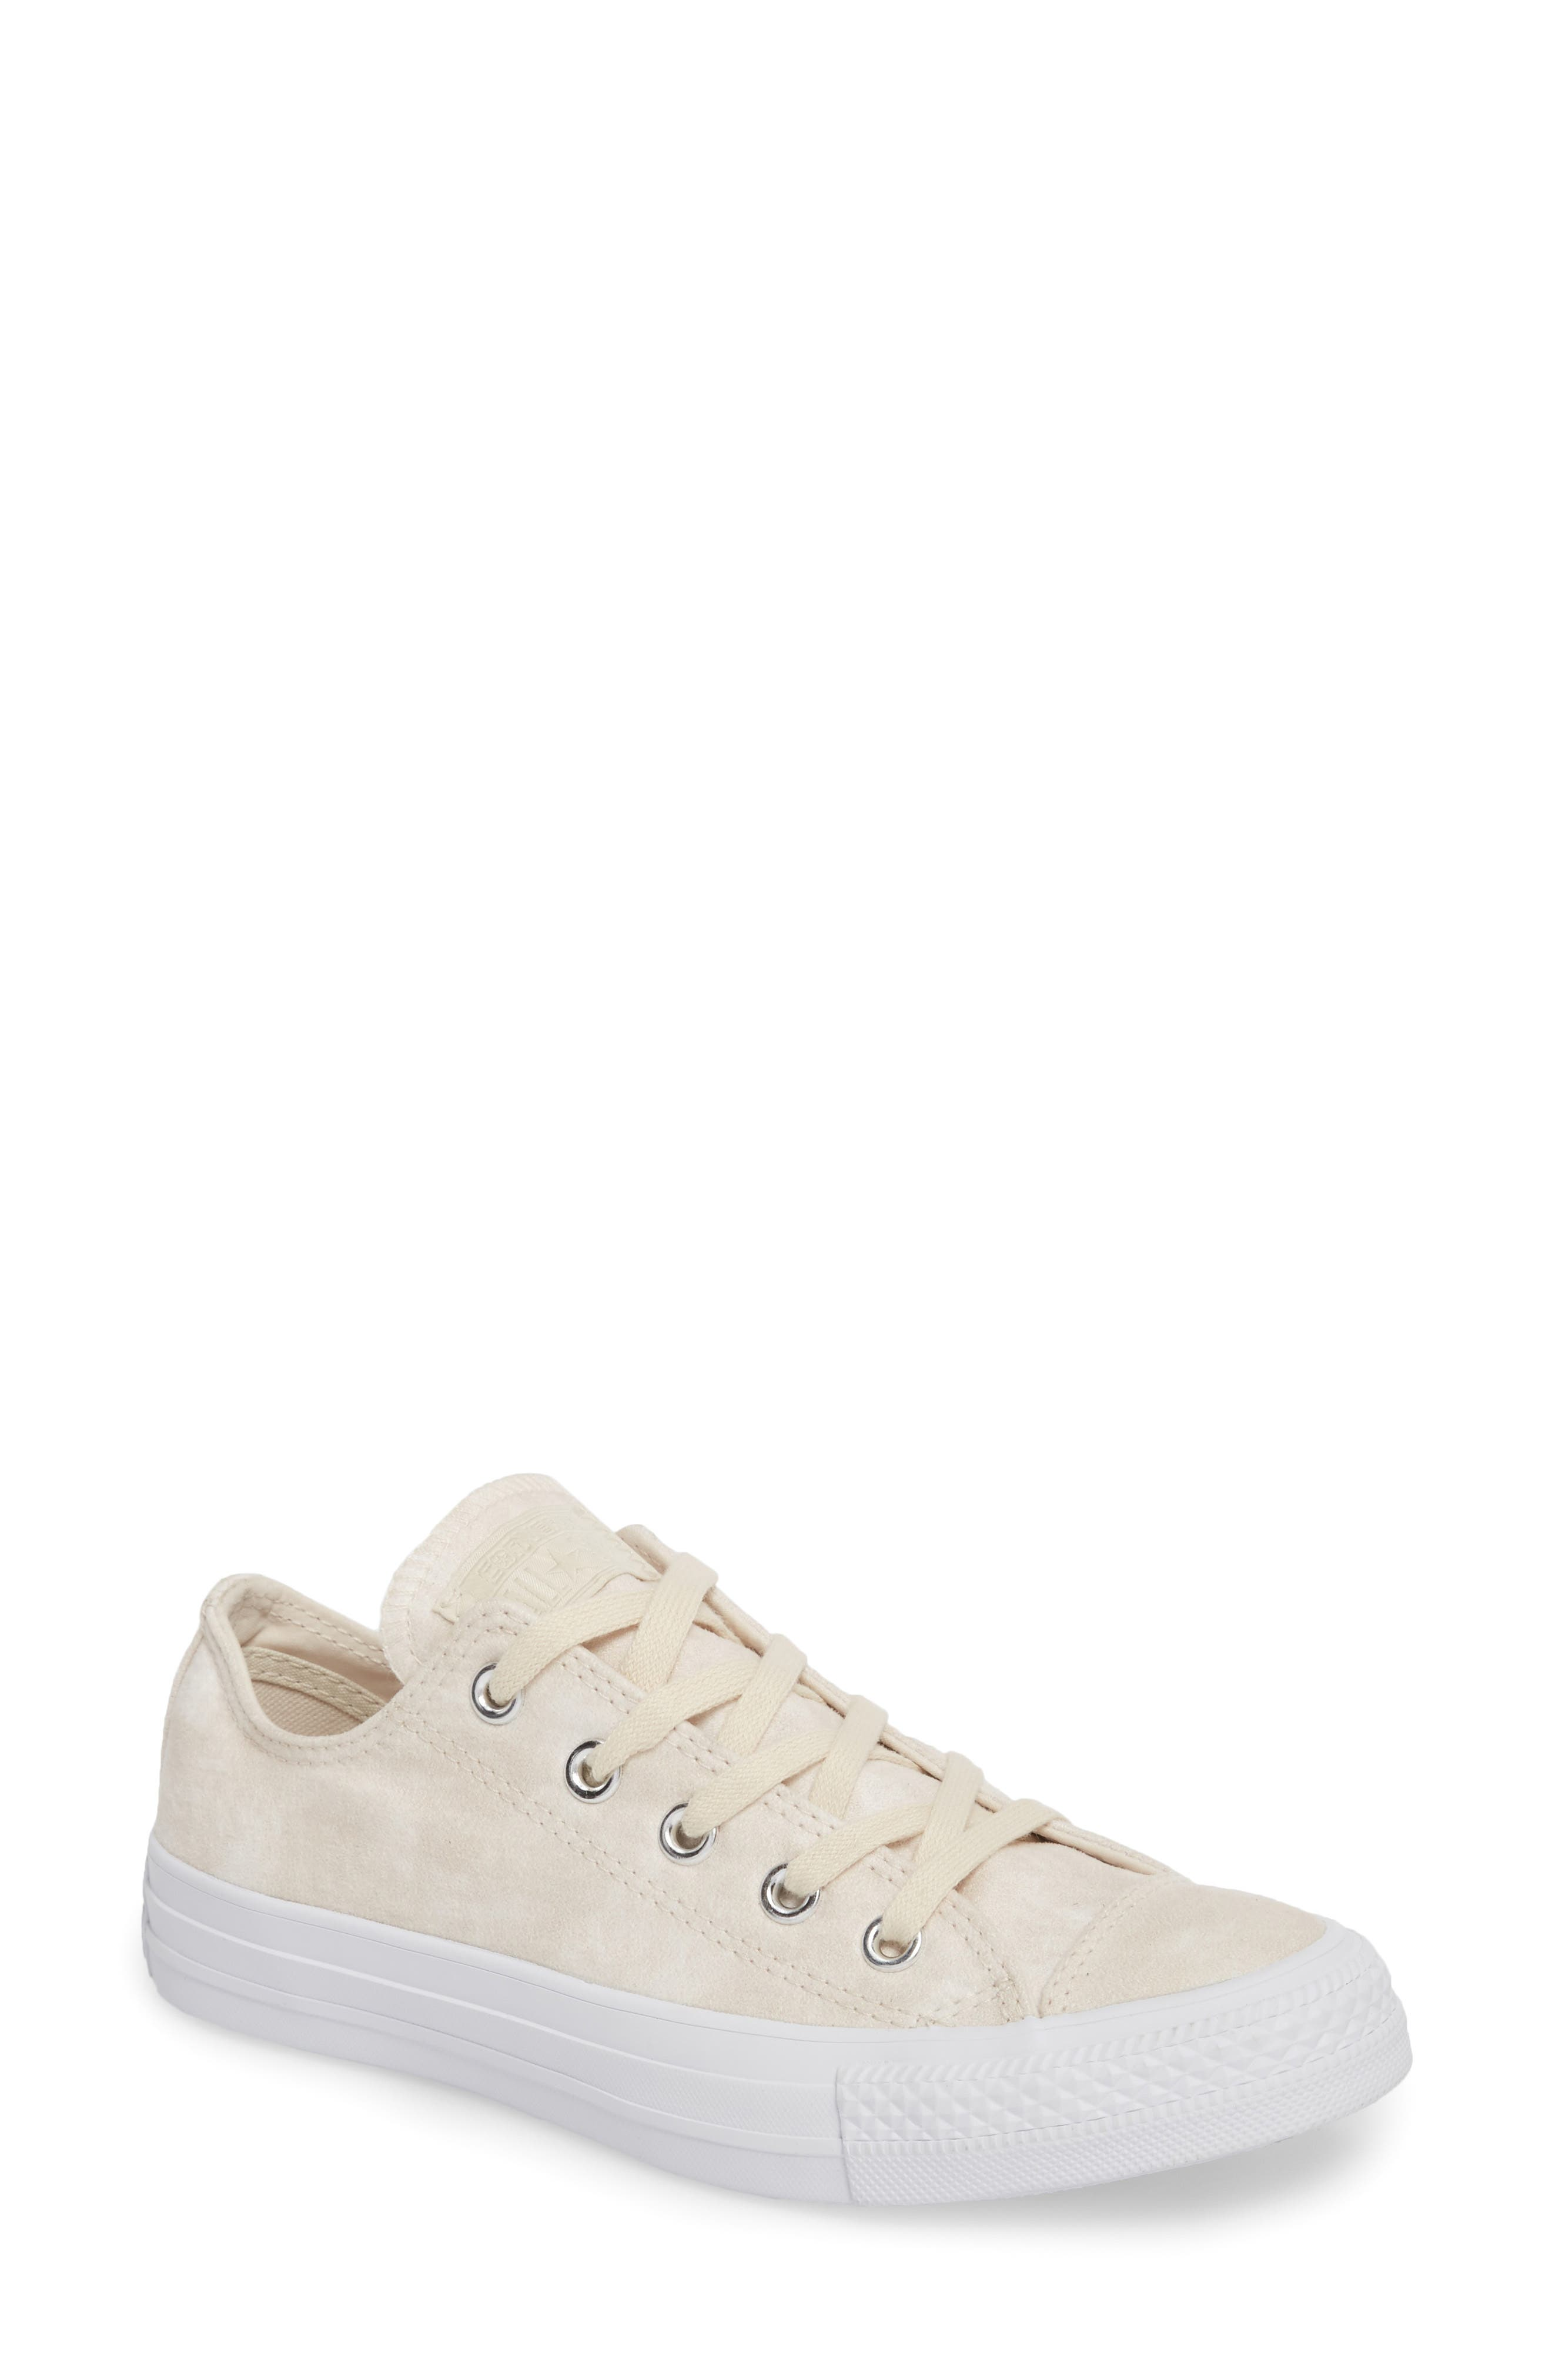 Chuck Taylor<sup>®</sup> All Star<sup>®</sup> Peached Low Top Sneaker,                         Main,                         color, 248